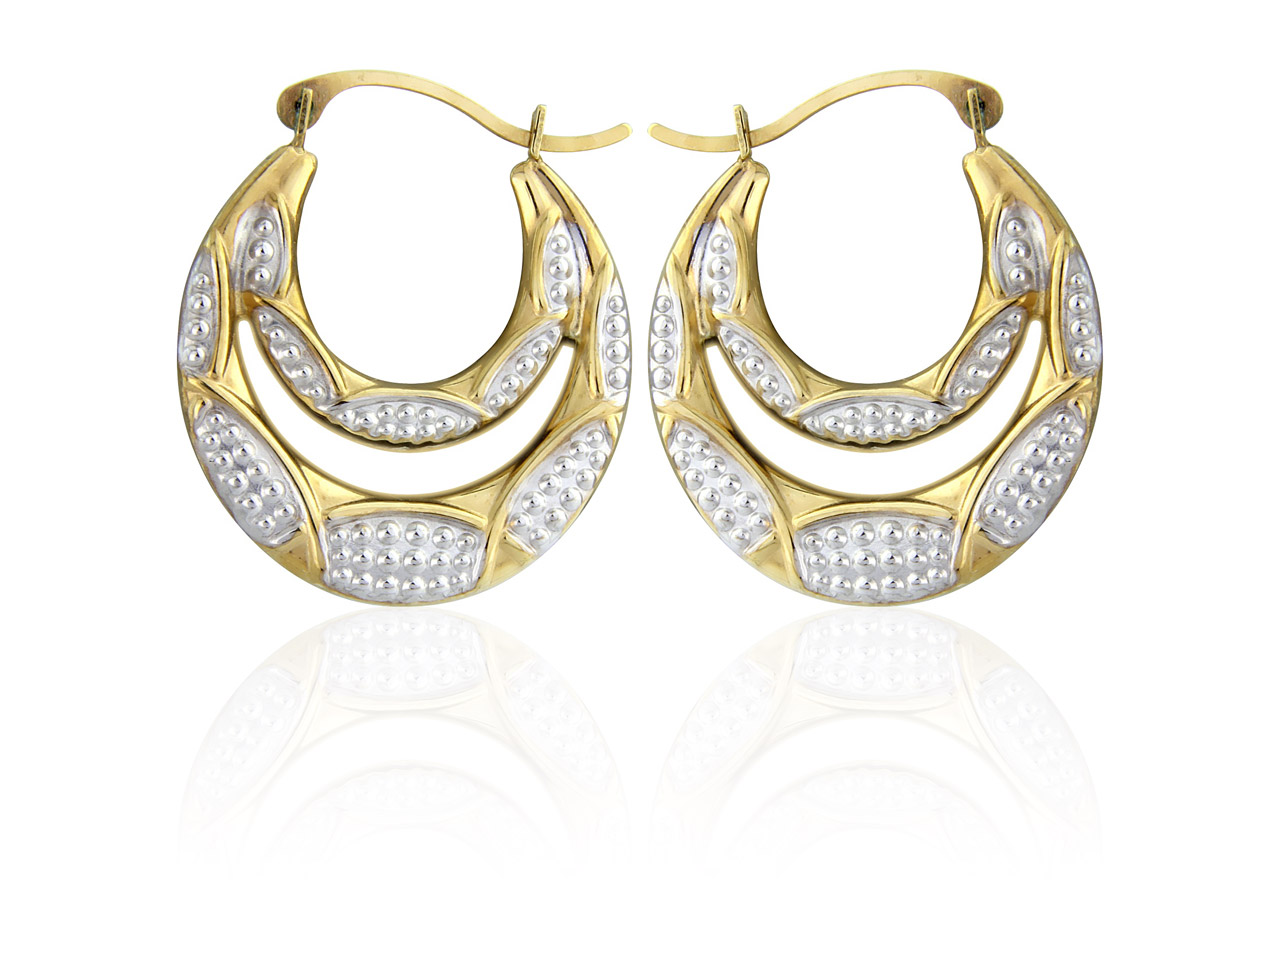 9ct Yellow Double Creole Earrings  With Beaded White Rhodium Plate